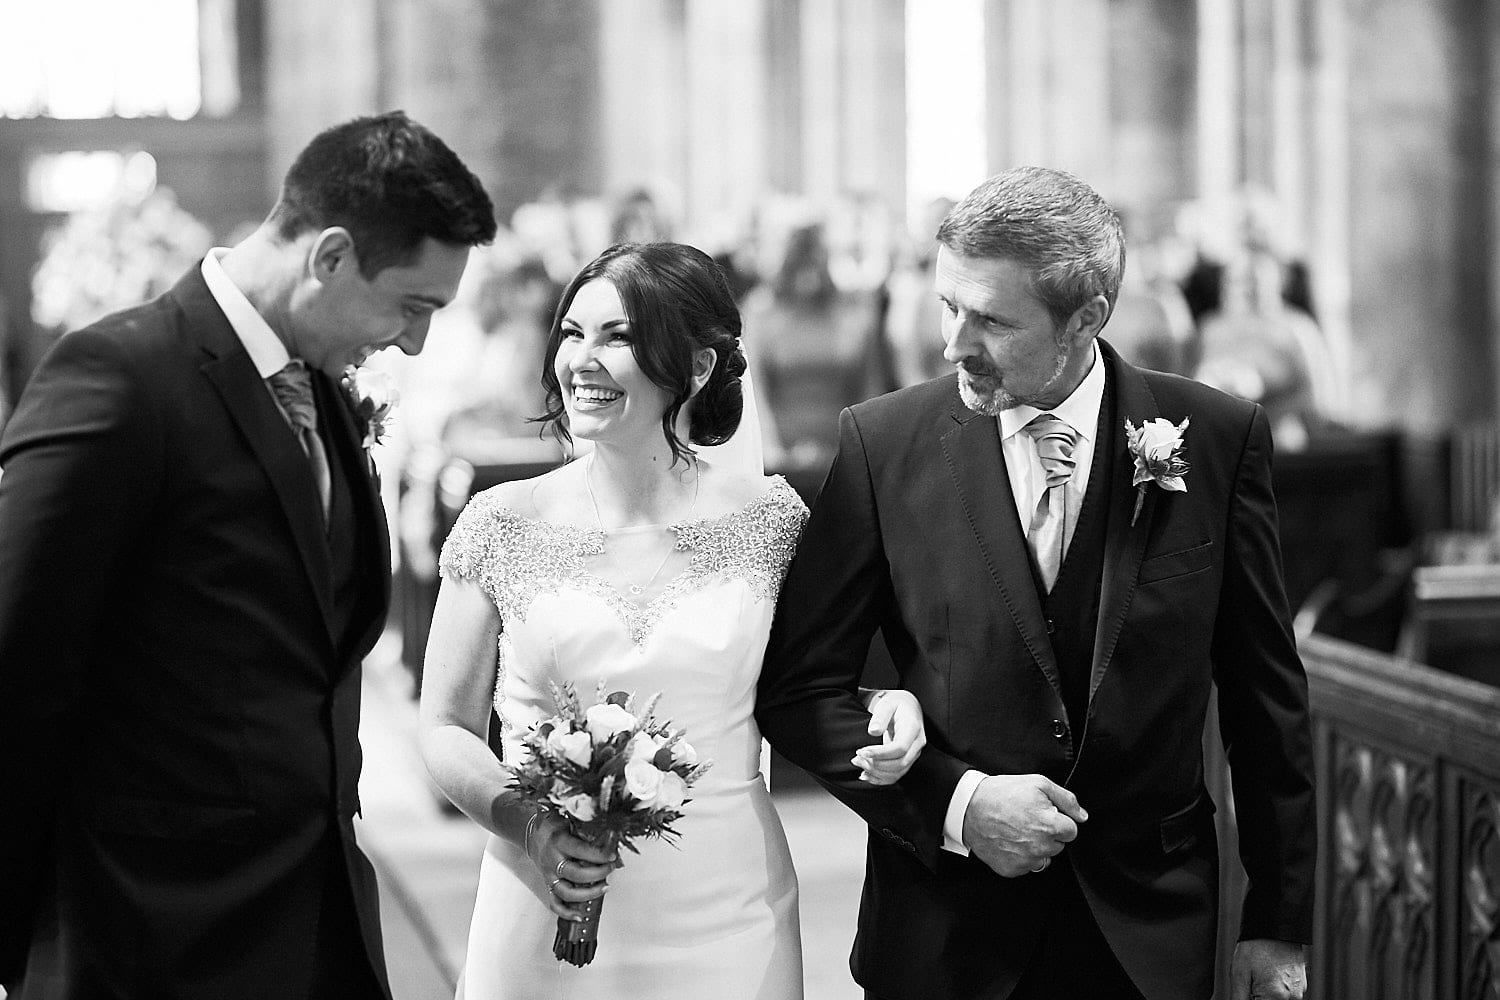 A father walks the bride down the aisle to greet her husband to be on their wedding day